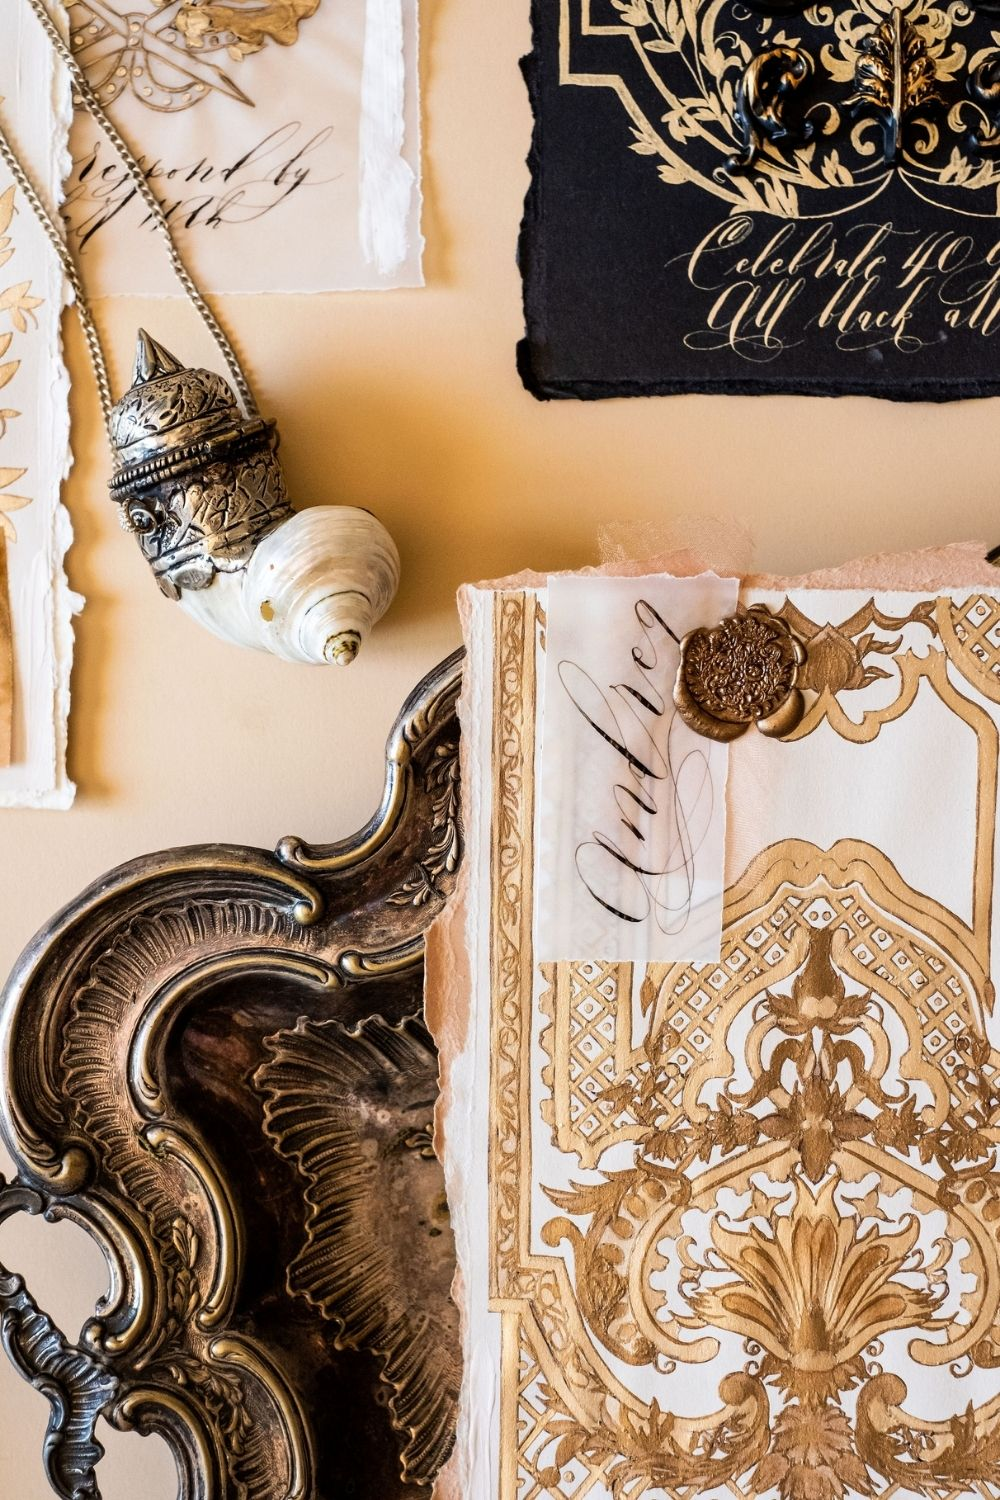 Villa Balbiano wedding invitations with beautiful hand painted details for a luxury wedding at Lake Como, Italy